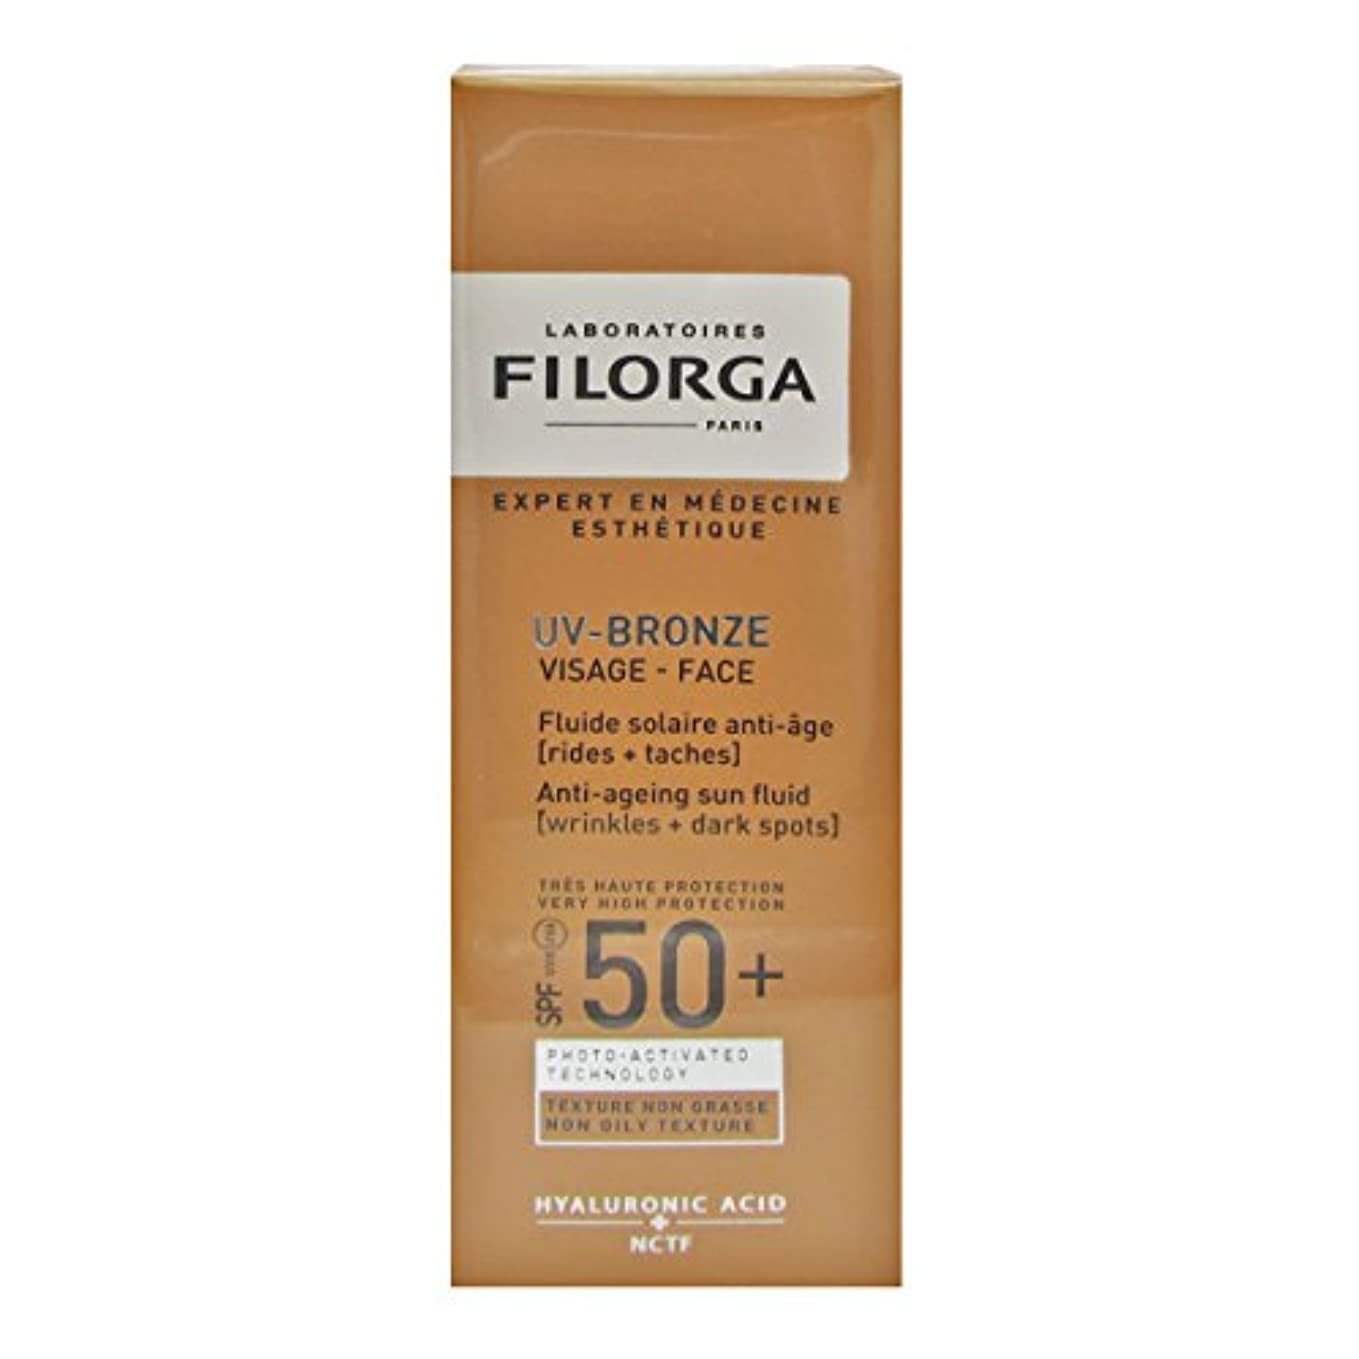 Filorga Uv-bronze Face Fluid Spf50+ 40ml [並行輸入品]